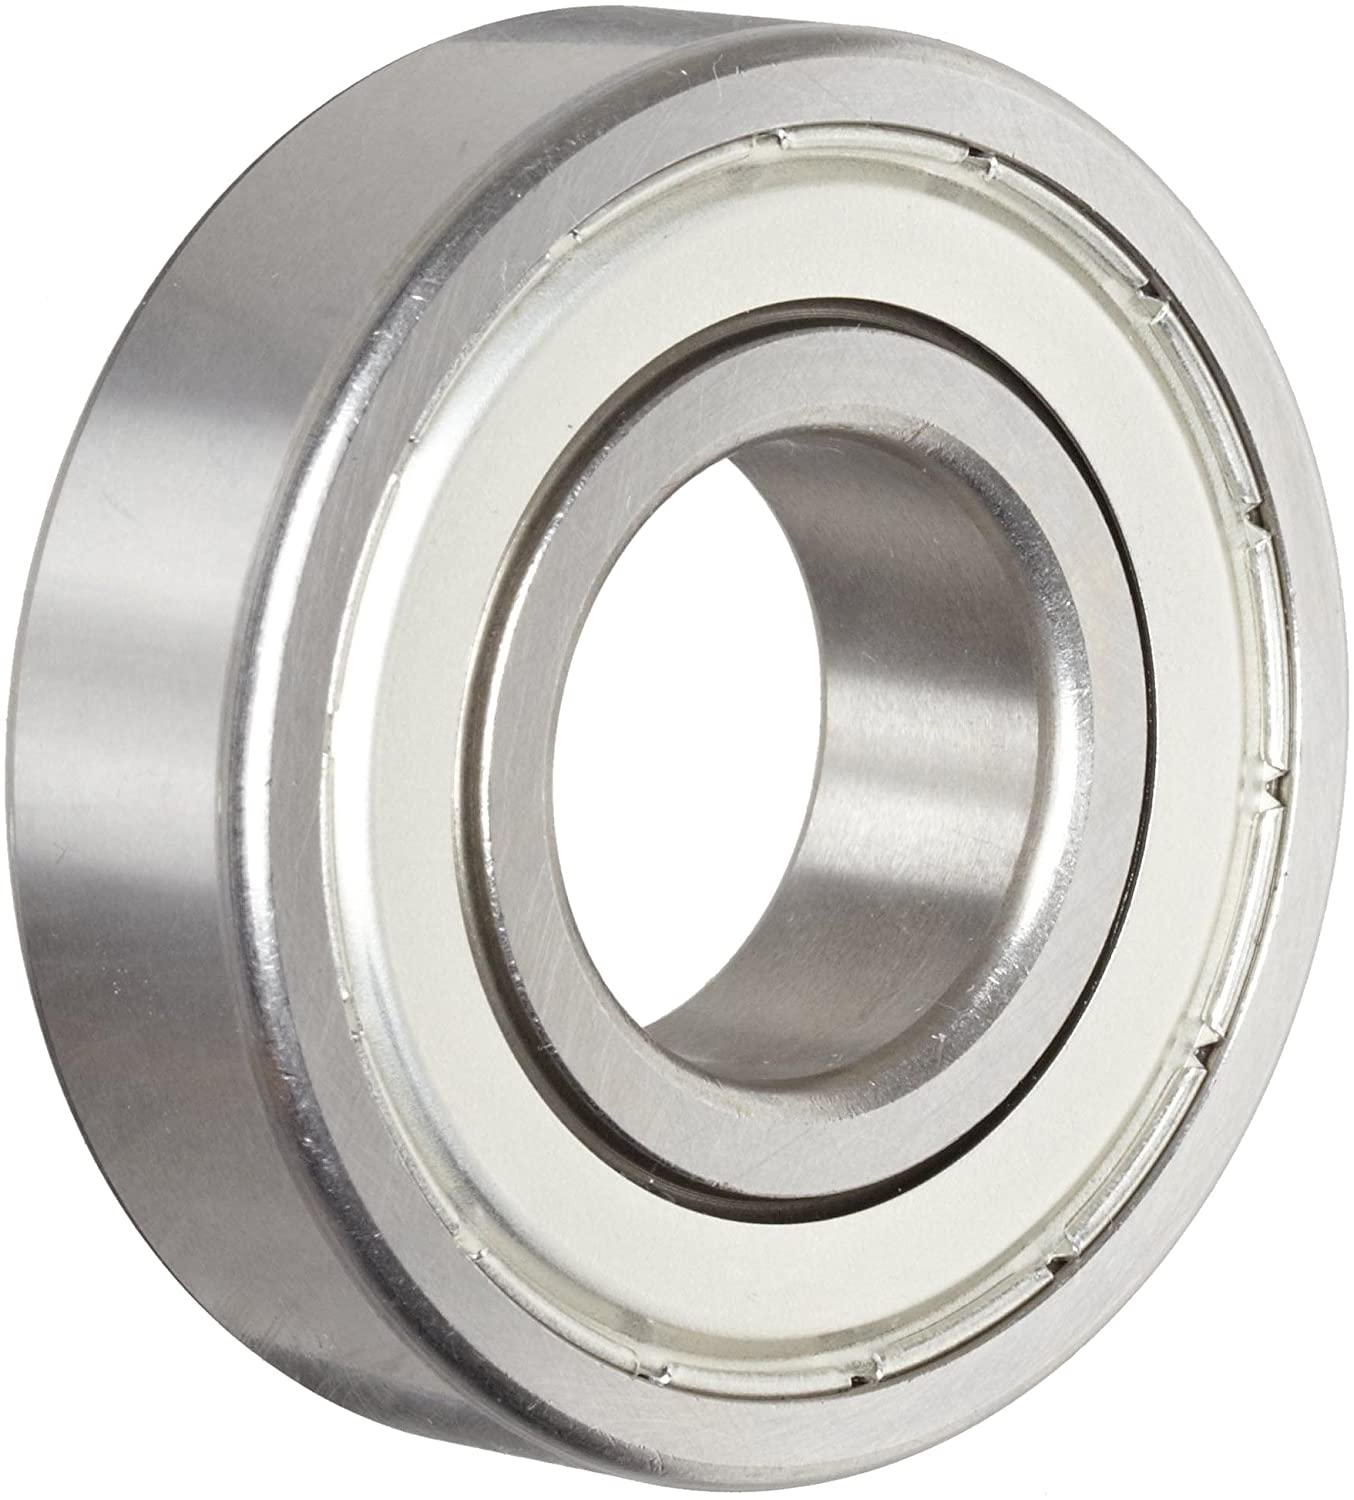 Nice Ball Bearing 1640DS Double Shielded, 52100 Bearing Quality Steel, 0.8750' Bore x 2.0000' OD x 0.5625' Width 0.8750 Bore x 2.0000 OD x 0.5625 Width RBC Bearings